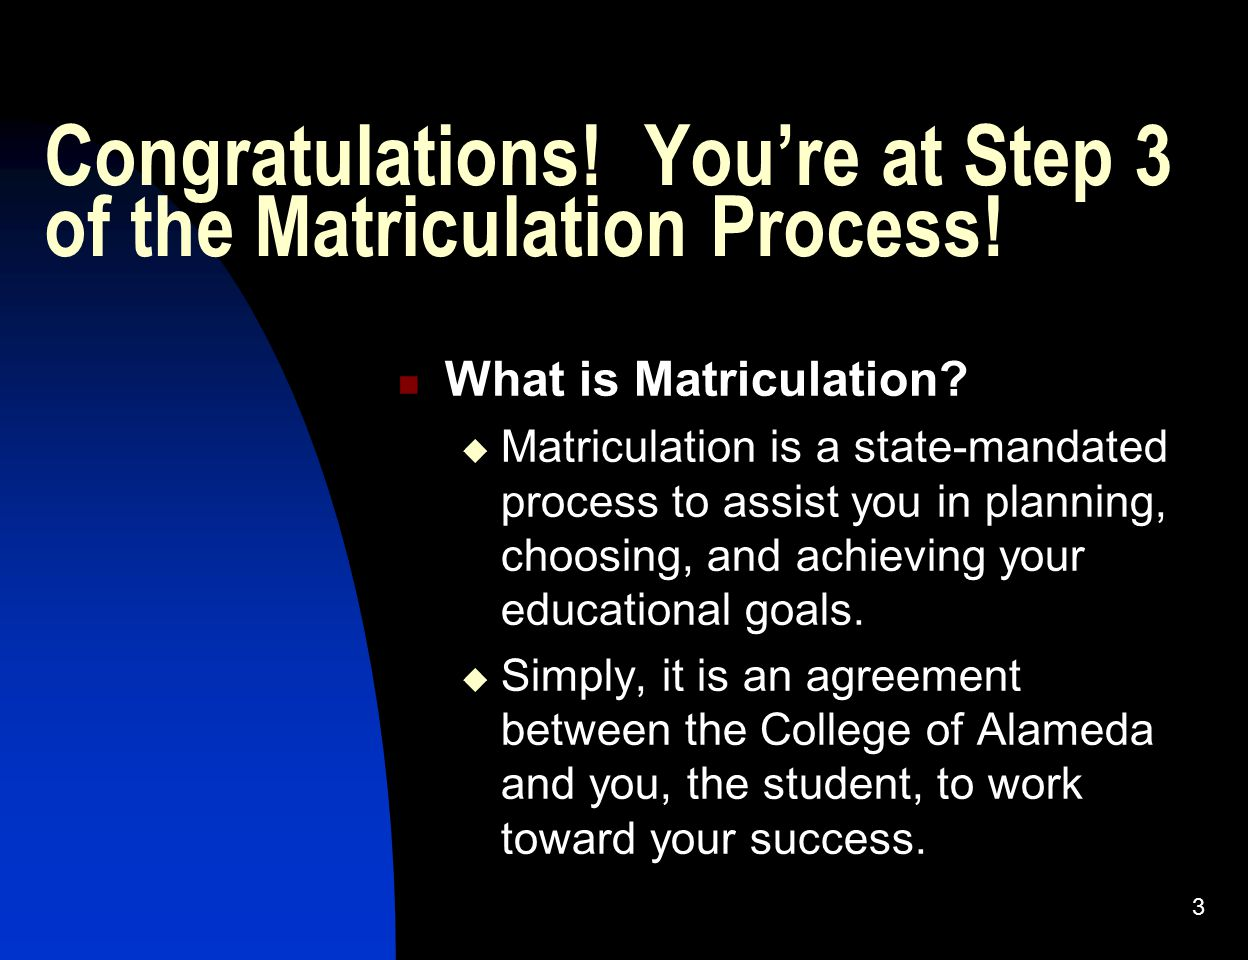 Congratulations! You're at Step 3 of the Matriculation Process!